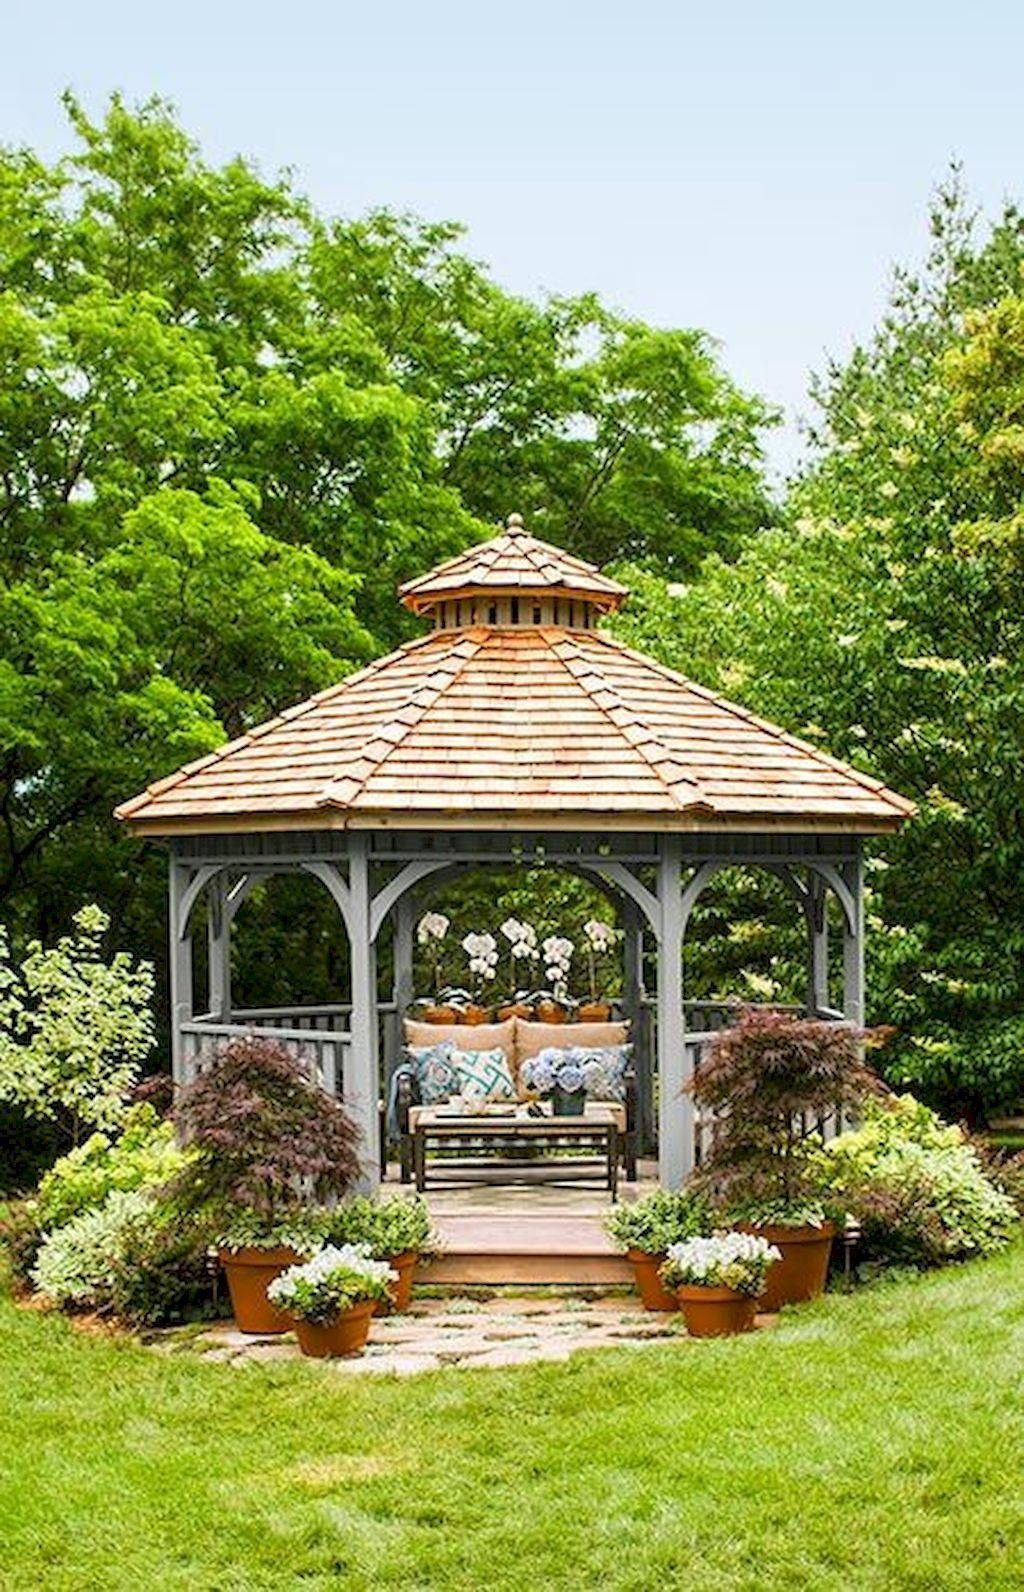 70 DIY Backyard Gazebo Design and Decorating Ideas ...